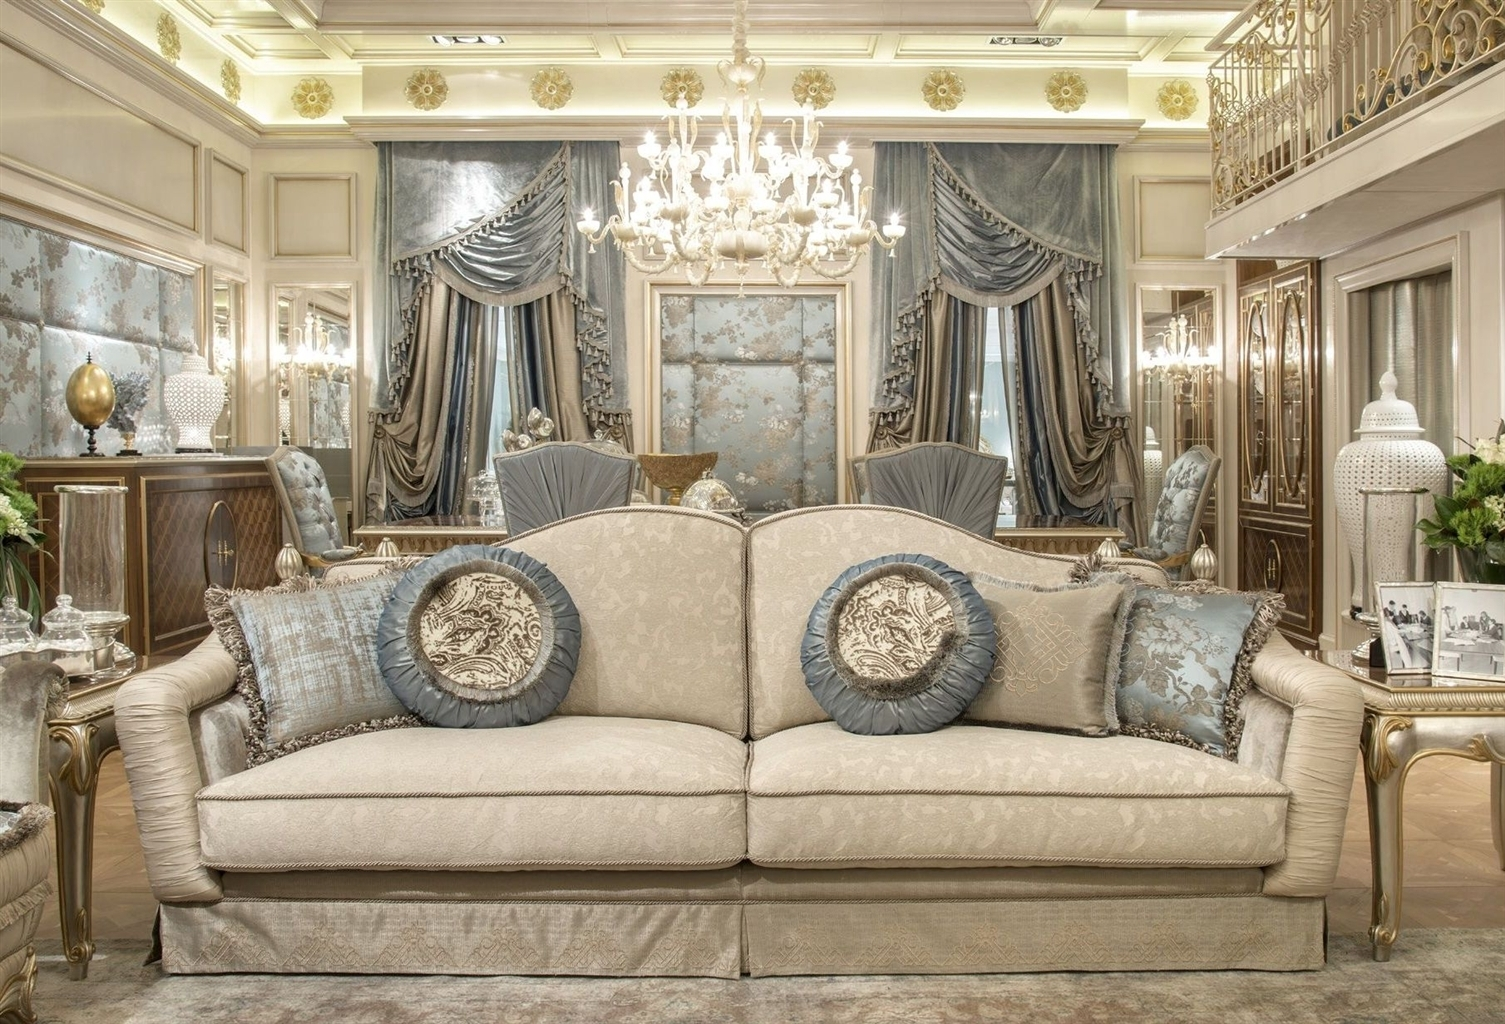 Fine Fabrics Highlight This Extraordinary Hand Made Luxury Sofa (Image 2 of 10)